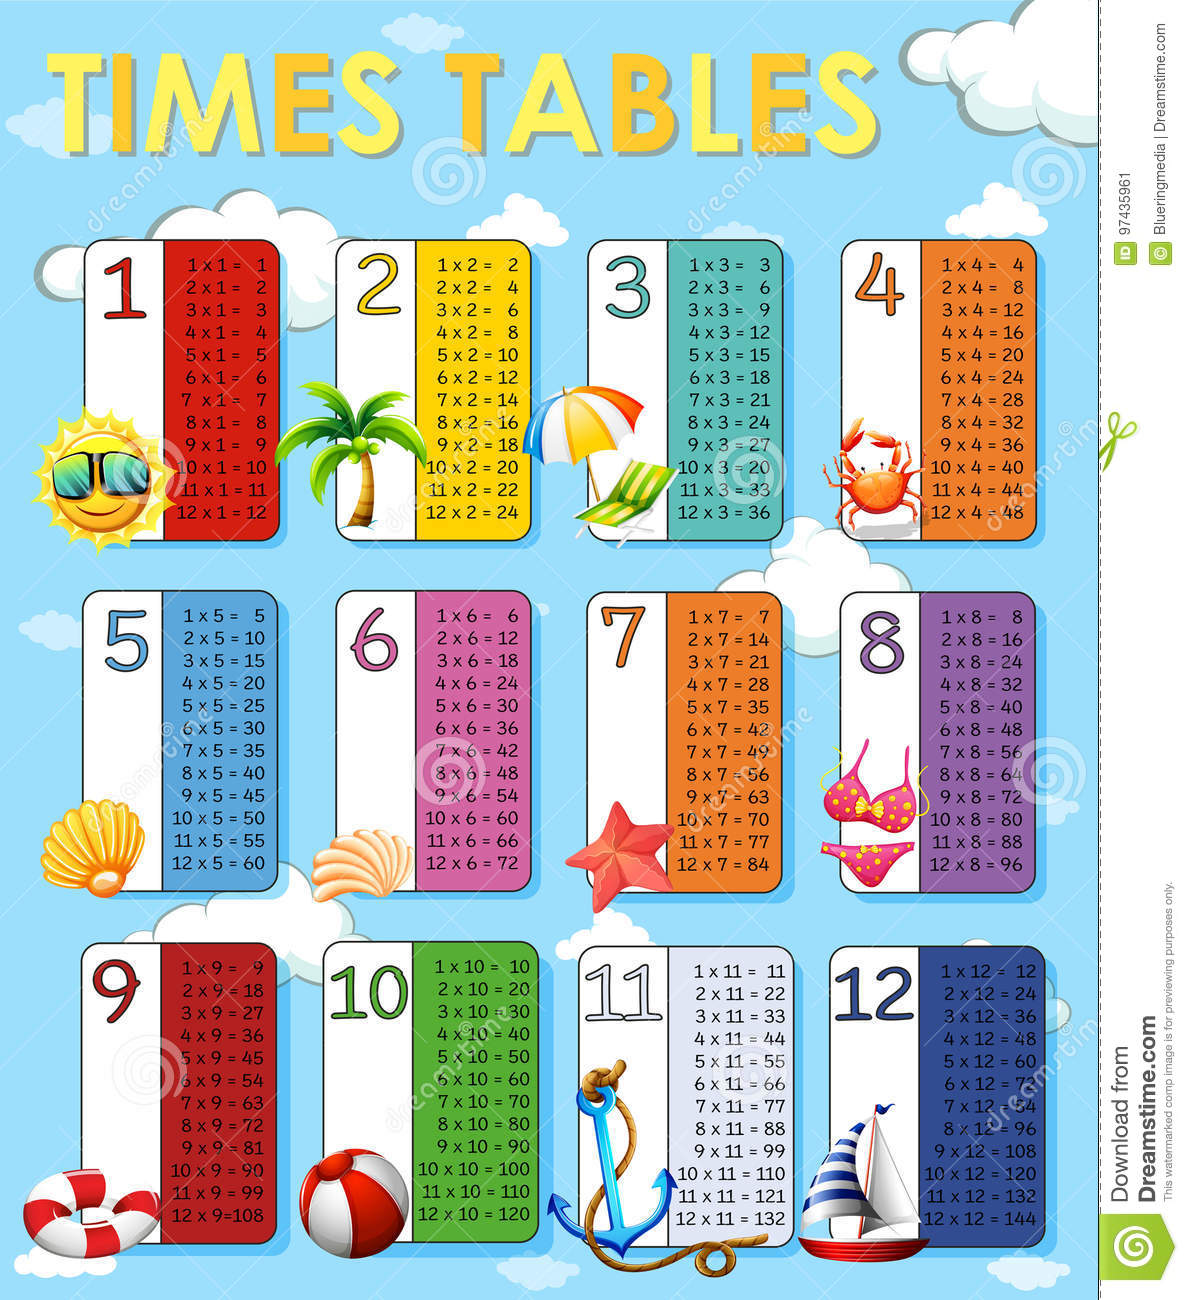 Times Tables With Summer Elements Background Stock